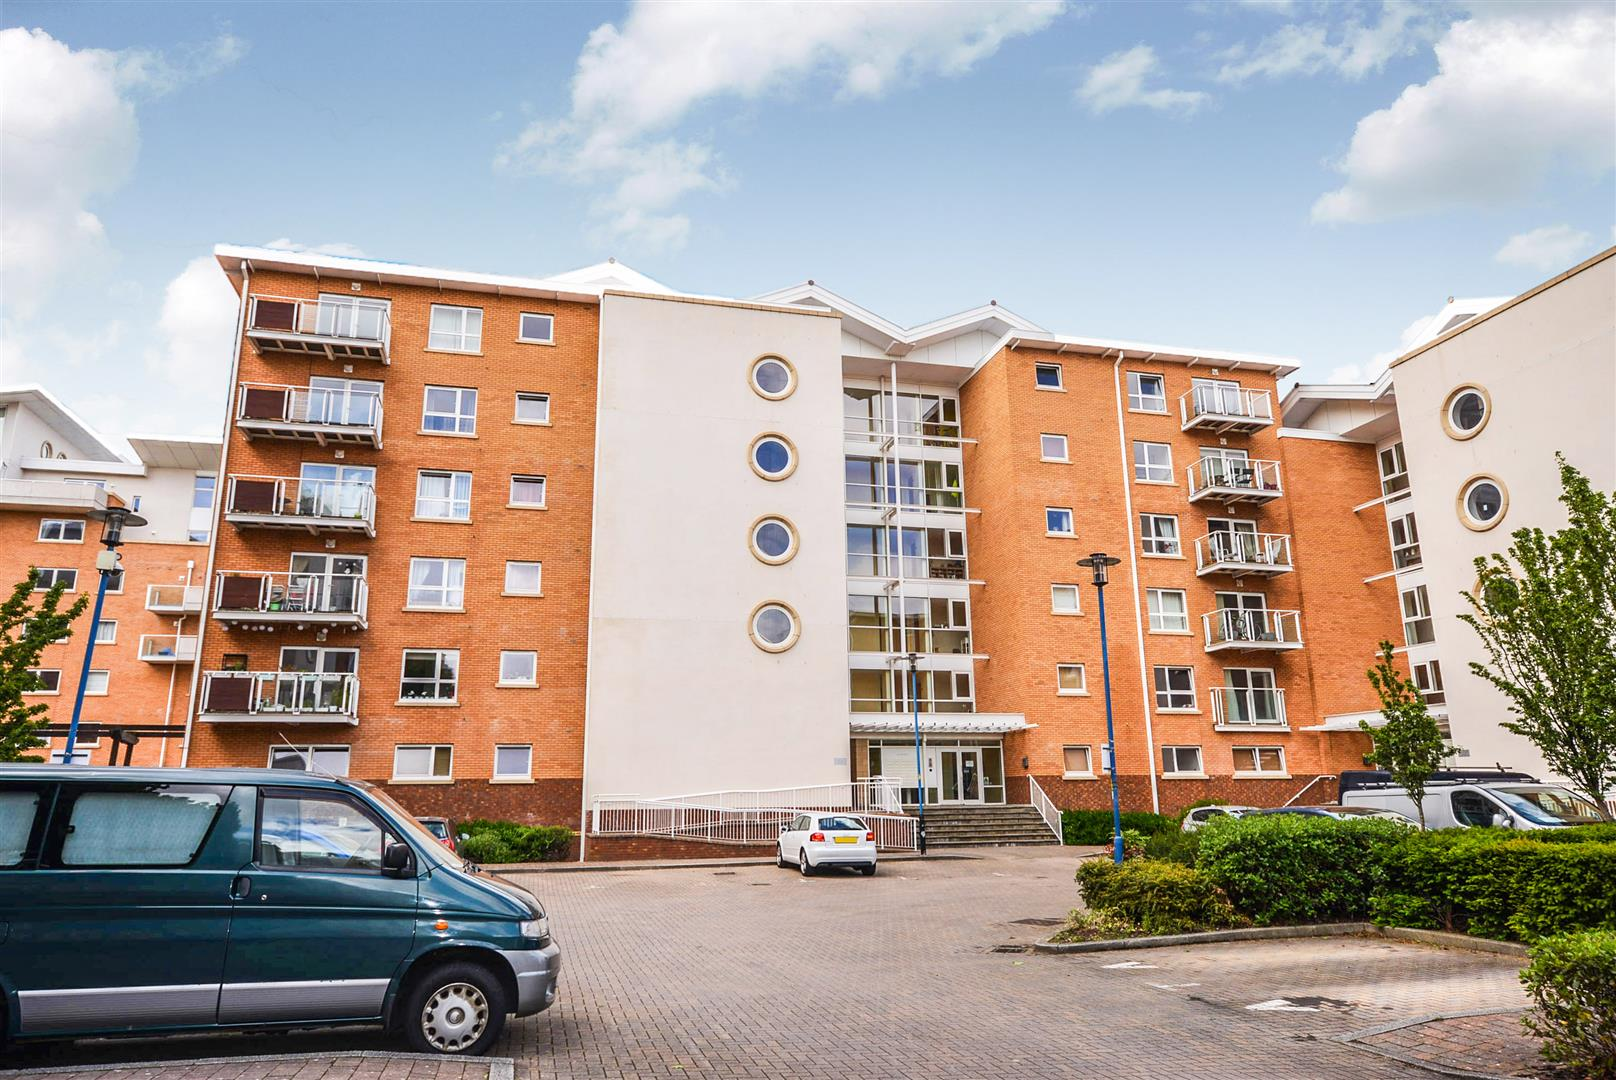 1 bed apartment for sale in Chandlery Way, Cardiff - Property Image 1